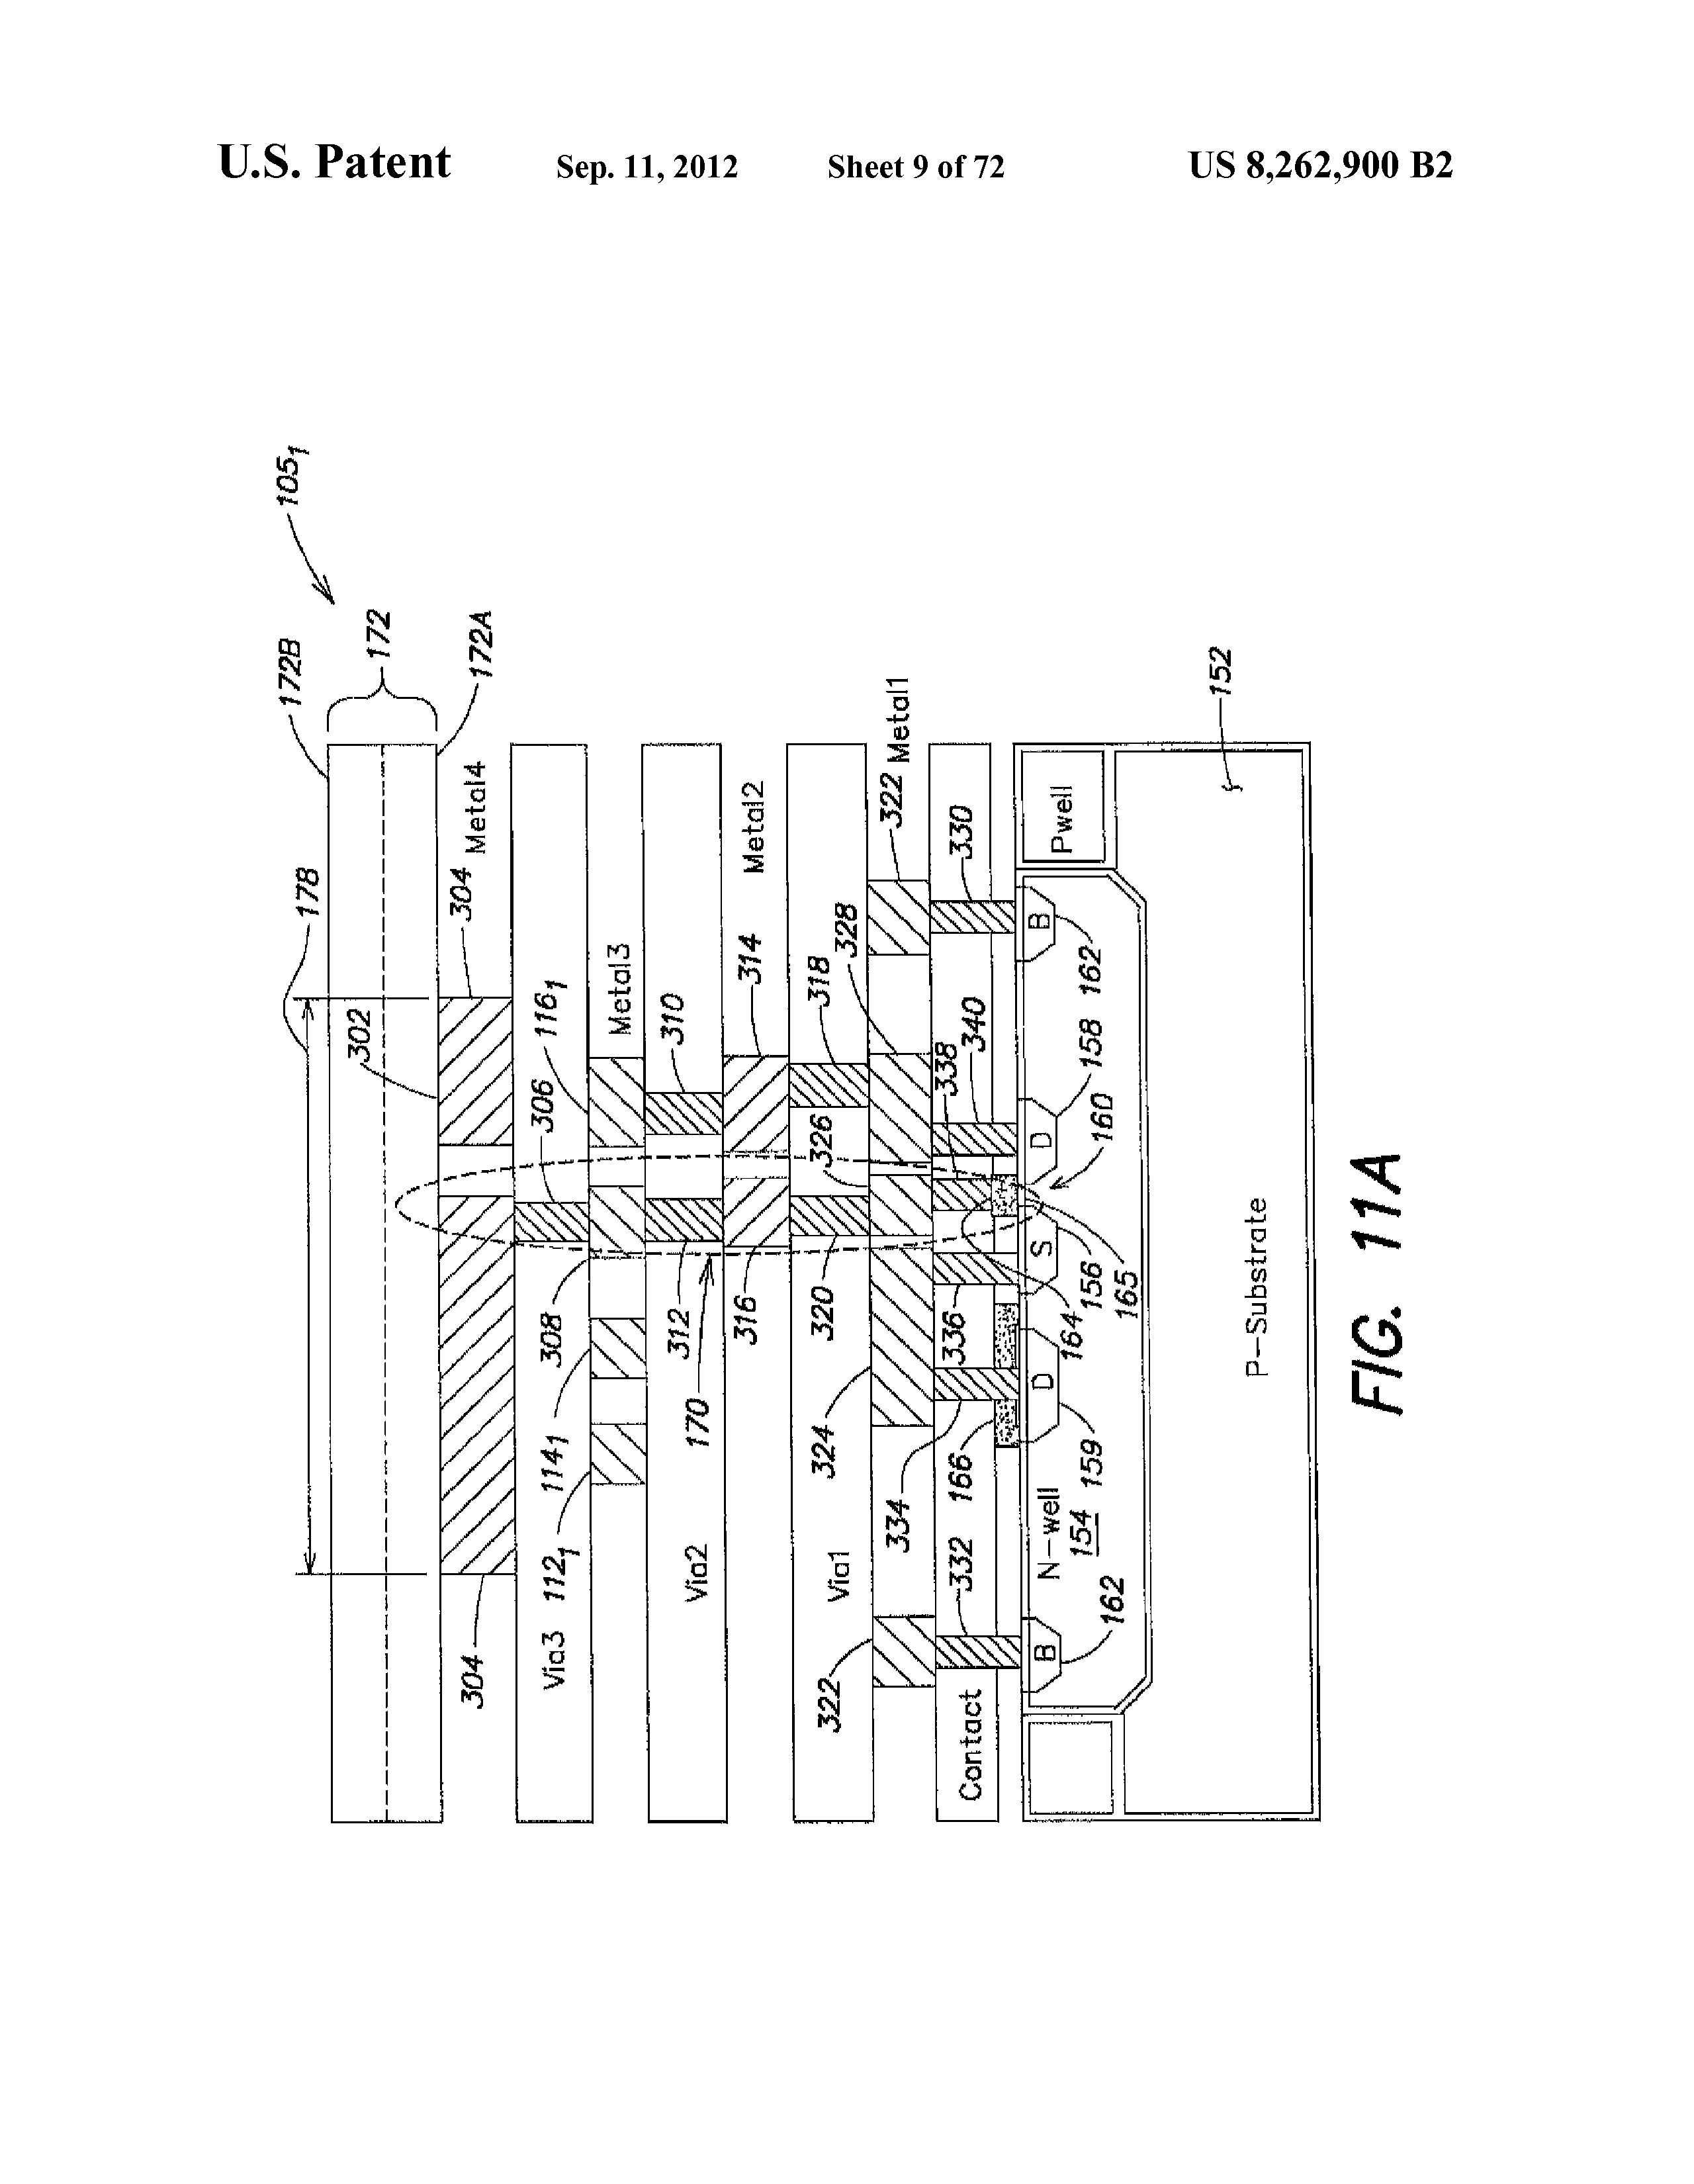 methods and apparatus for measuring analytes using large